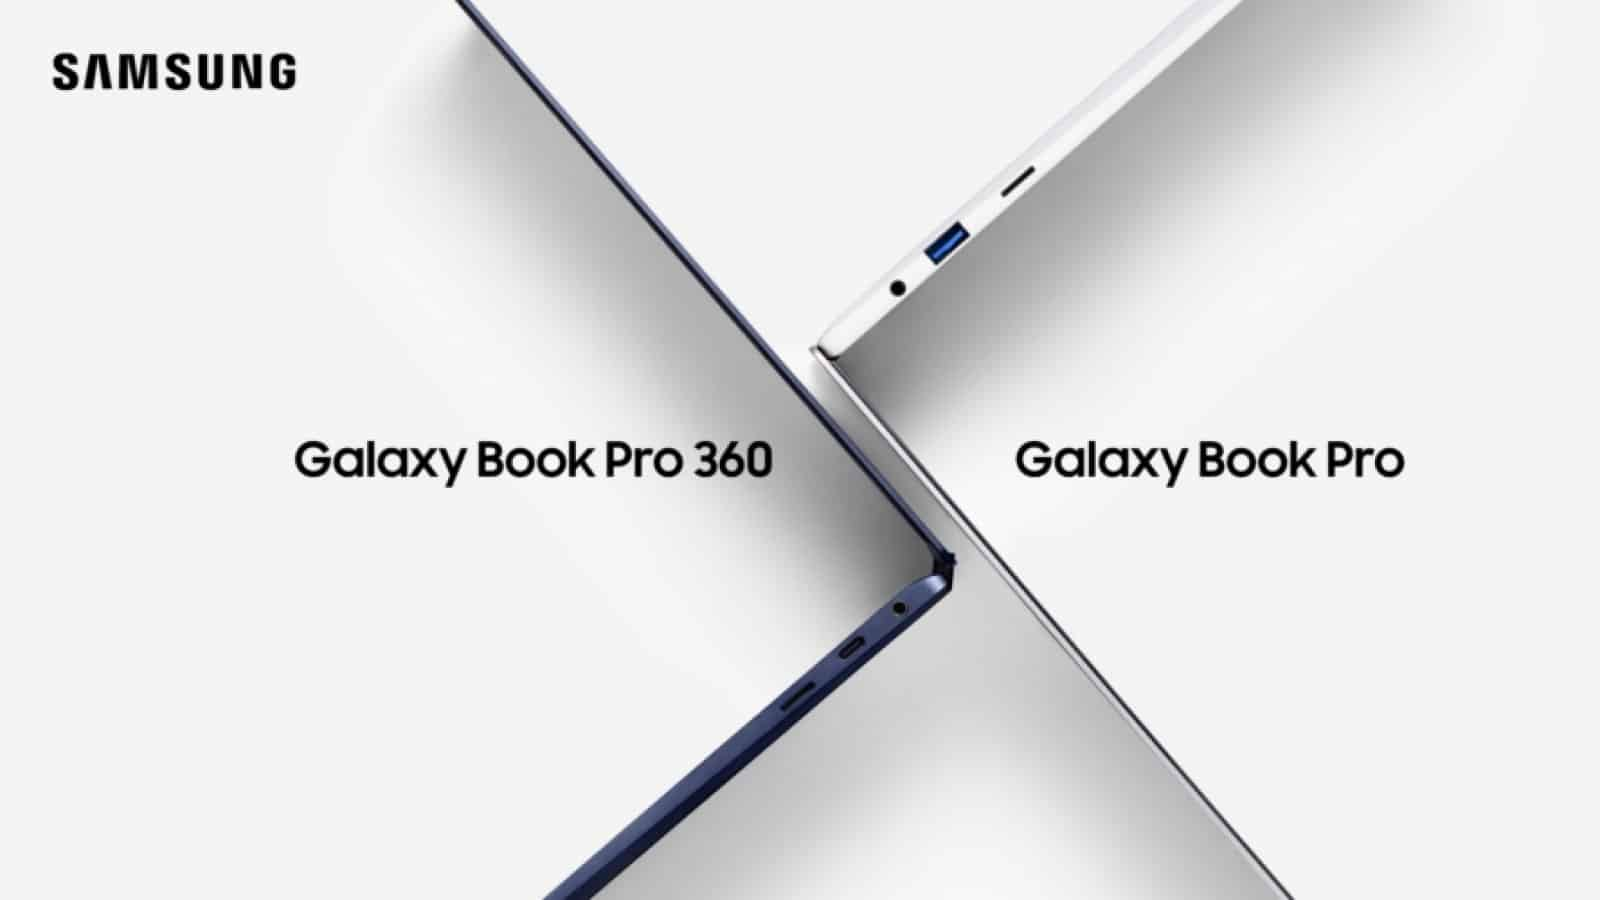 samsung galaxy book pro and pro 360 laptops